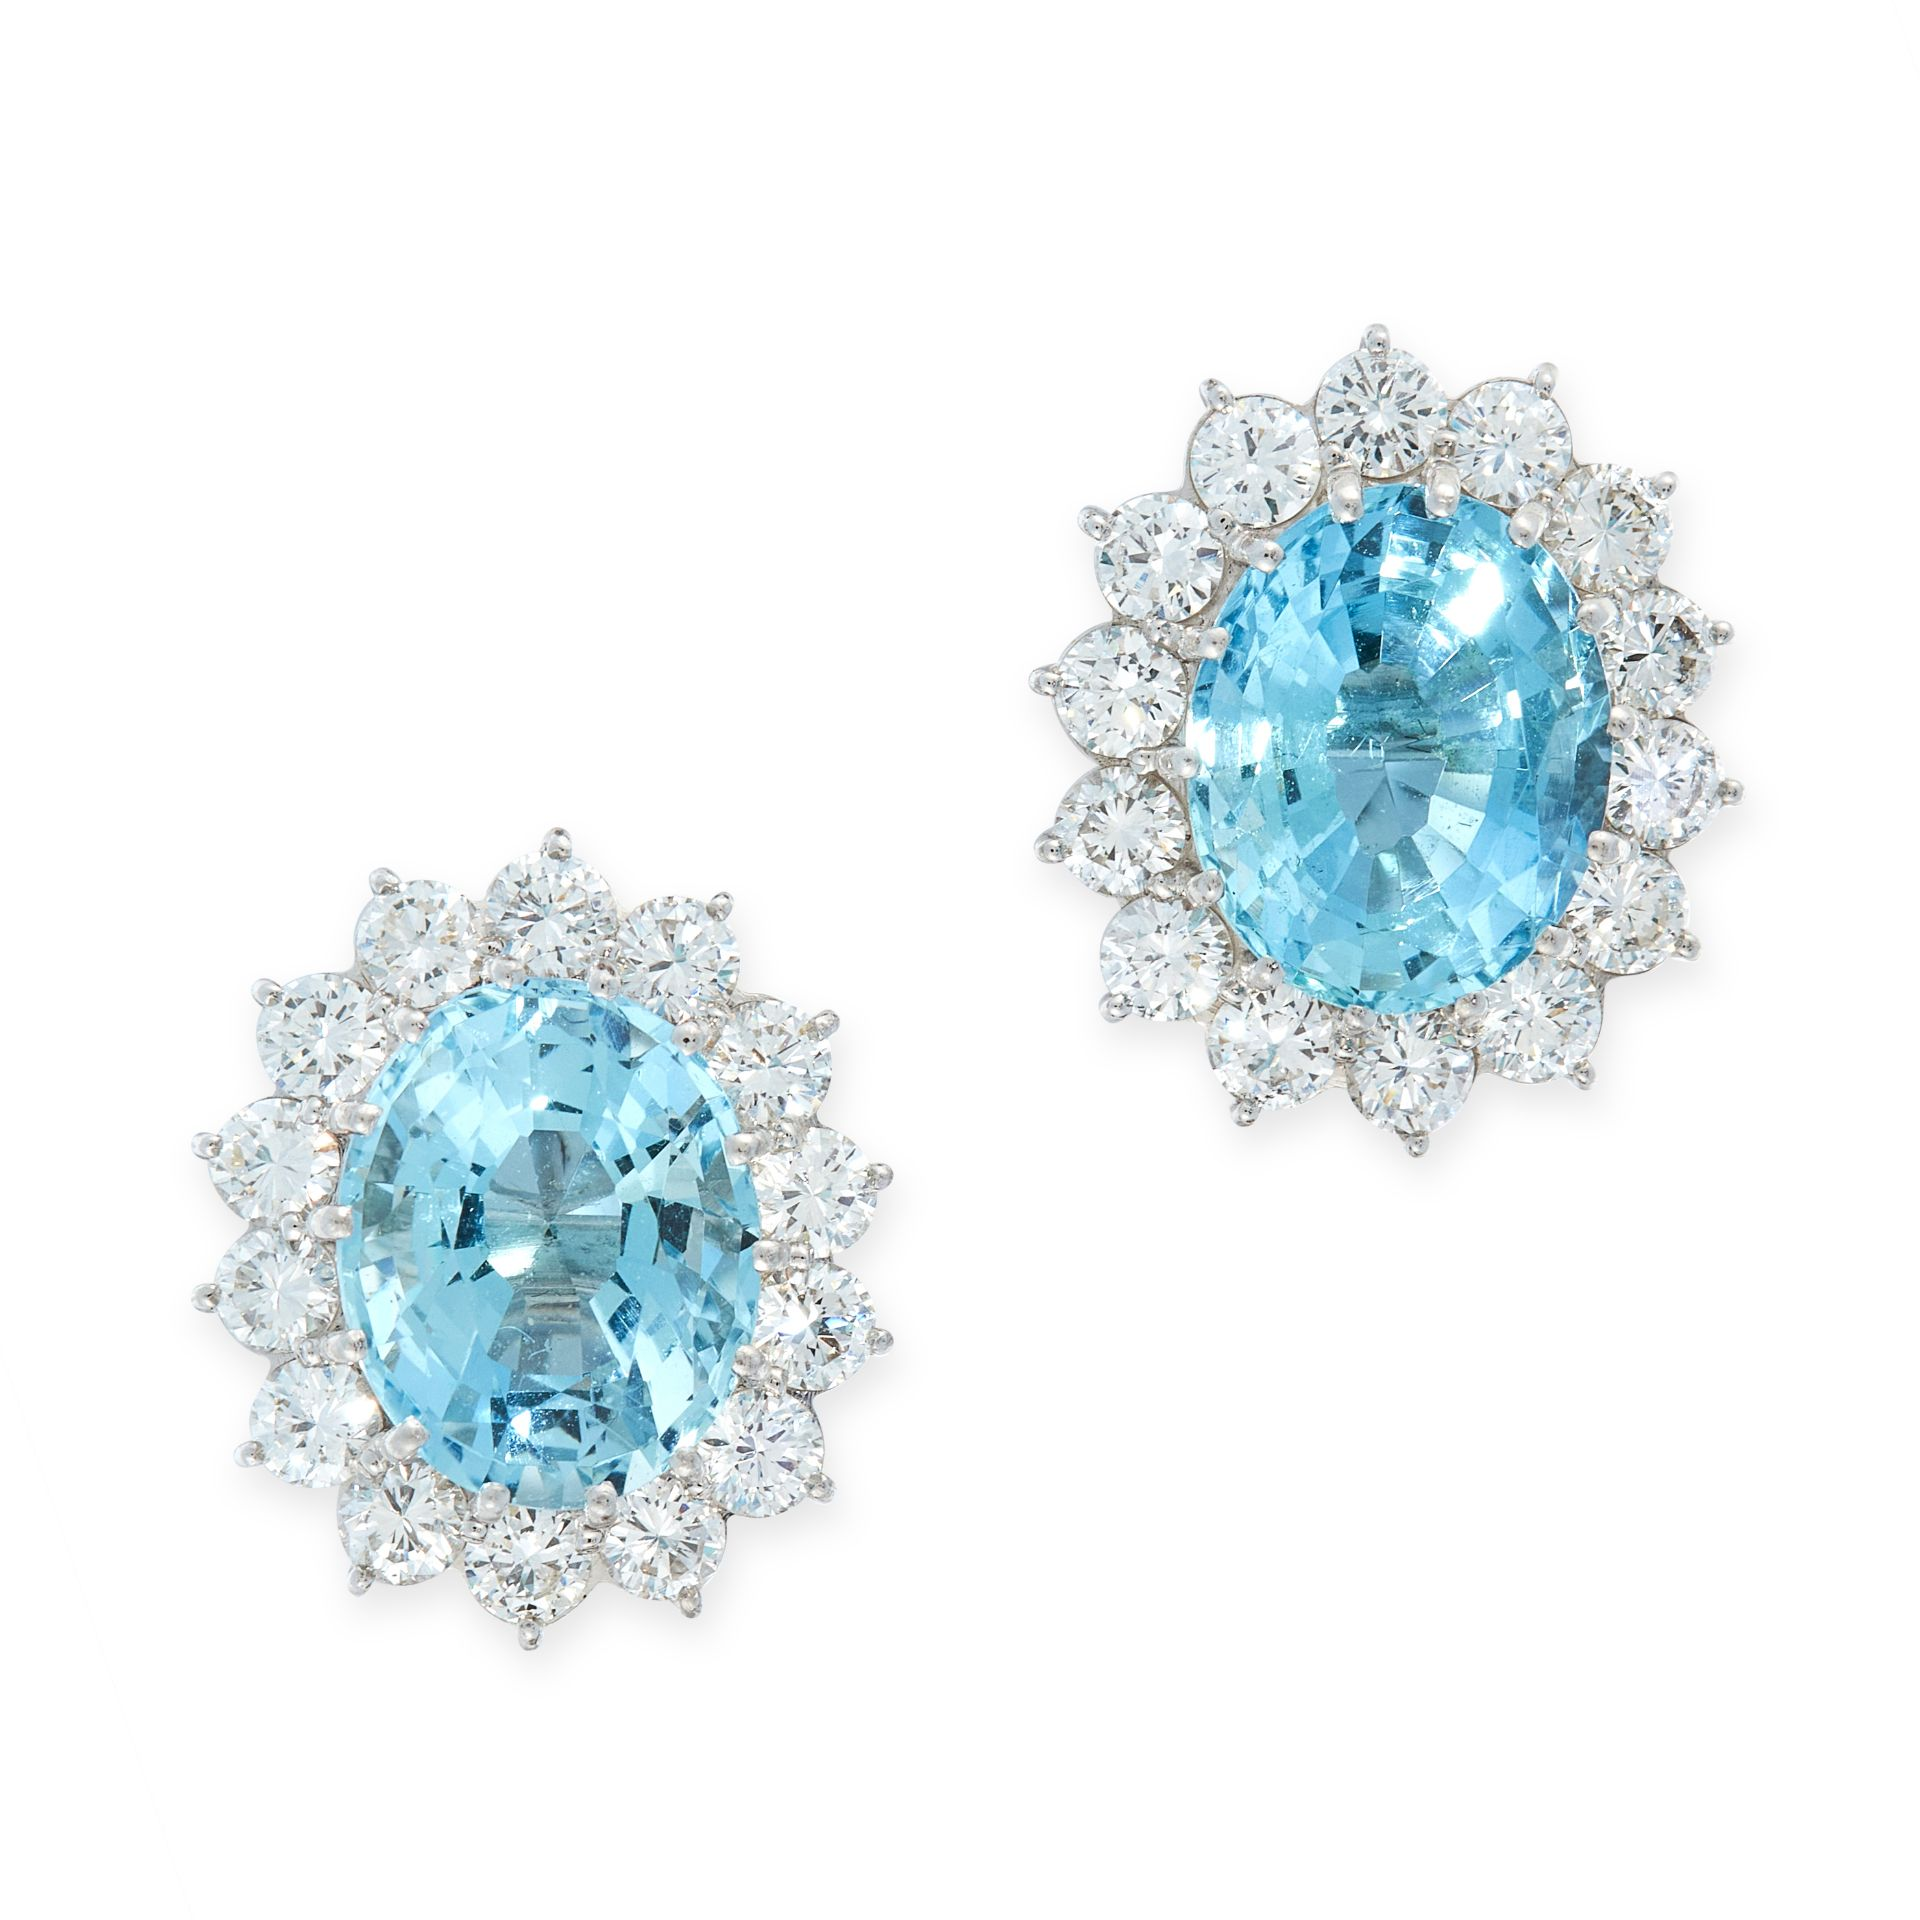 A PAIR OF AQUAMARINE AND DIAMOND STUD EARRINGS each set with an oval cut aquamarine of 2.94 carats